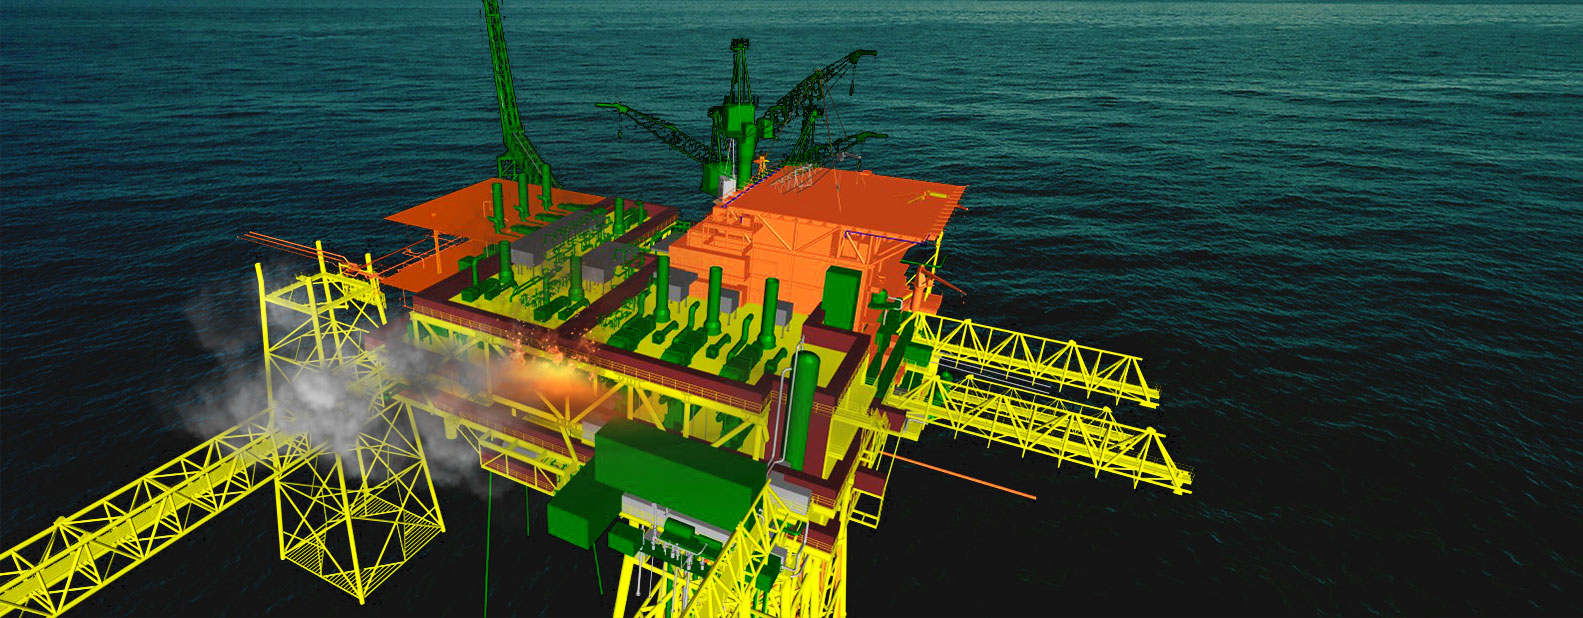 OFFSHORE FACILITIES_CFD MODELING_EXPLOSION ANALYSIS_SAFE DISTANCES